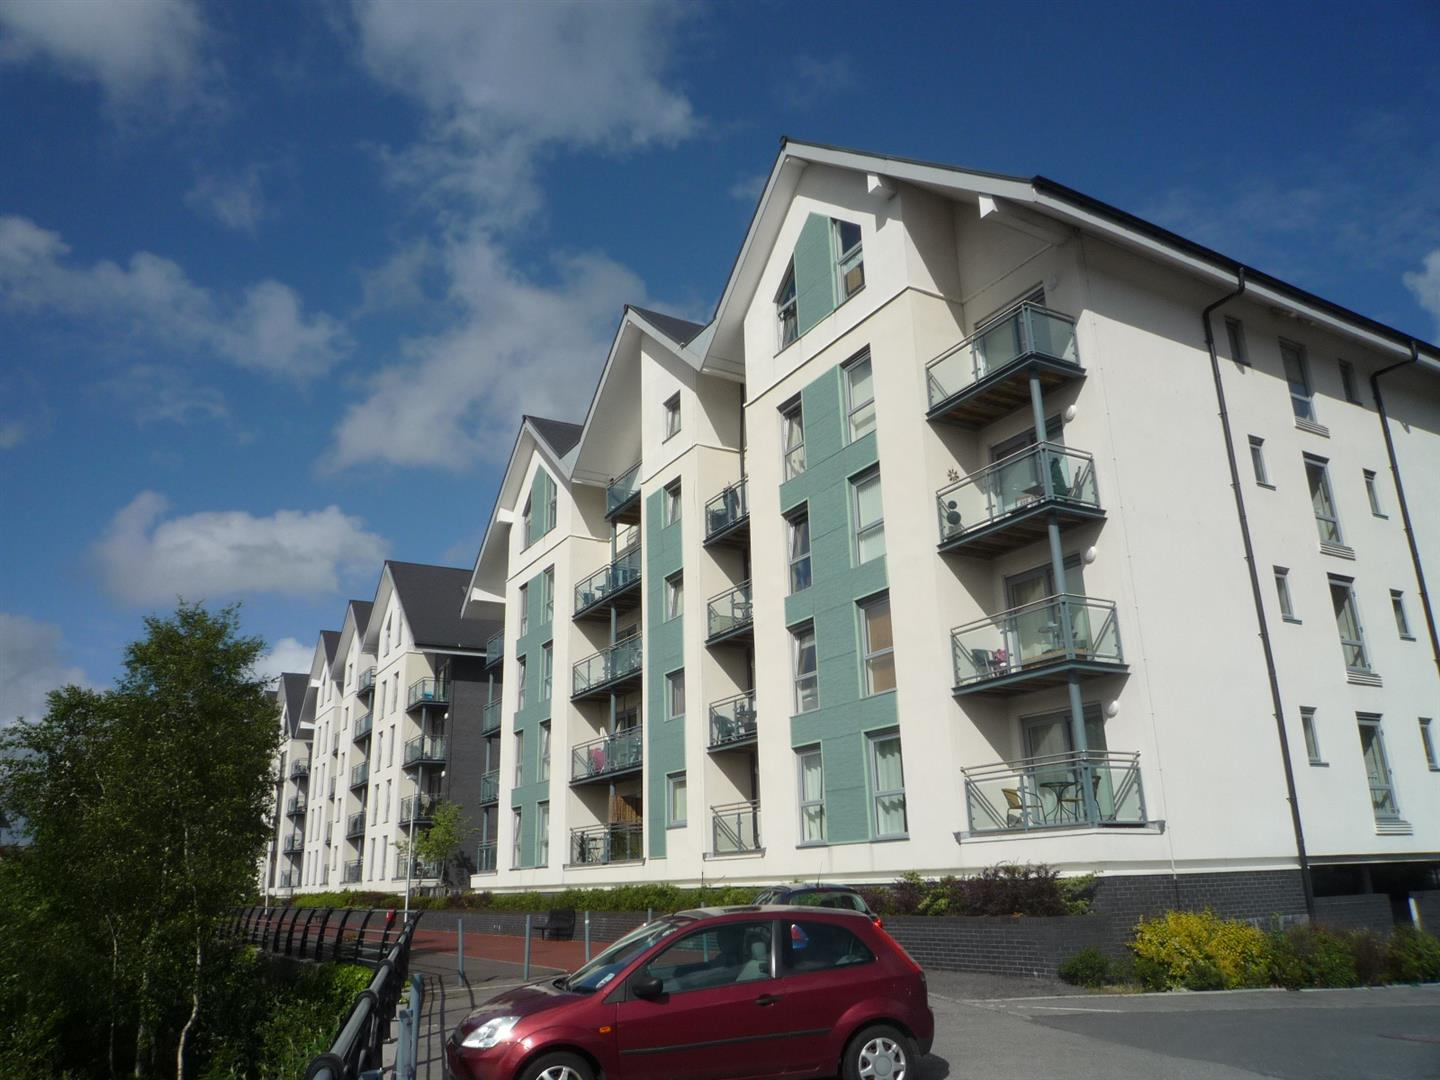 Royal Sovereign Apartments, Copper Quarter Swansea, SA1 7FH